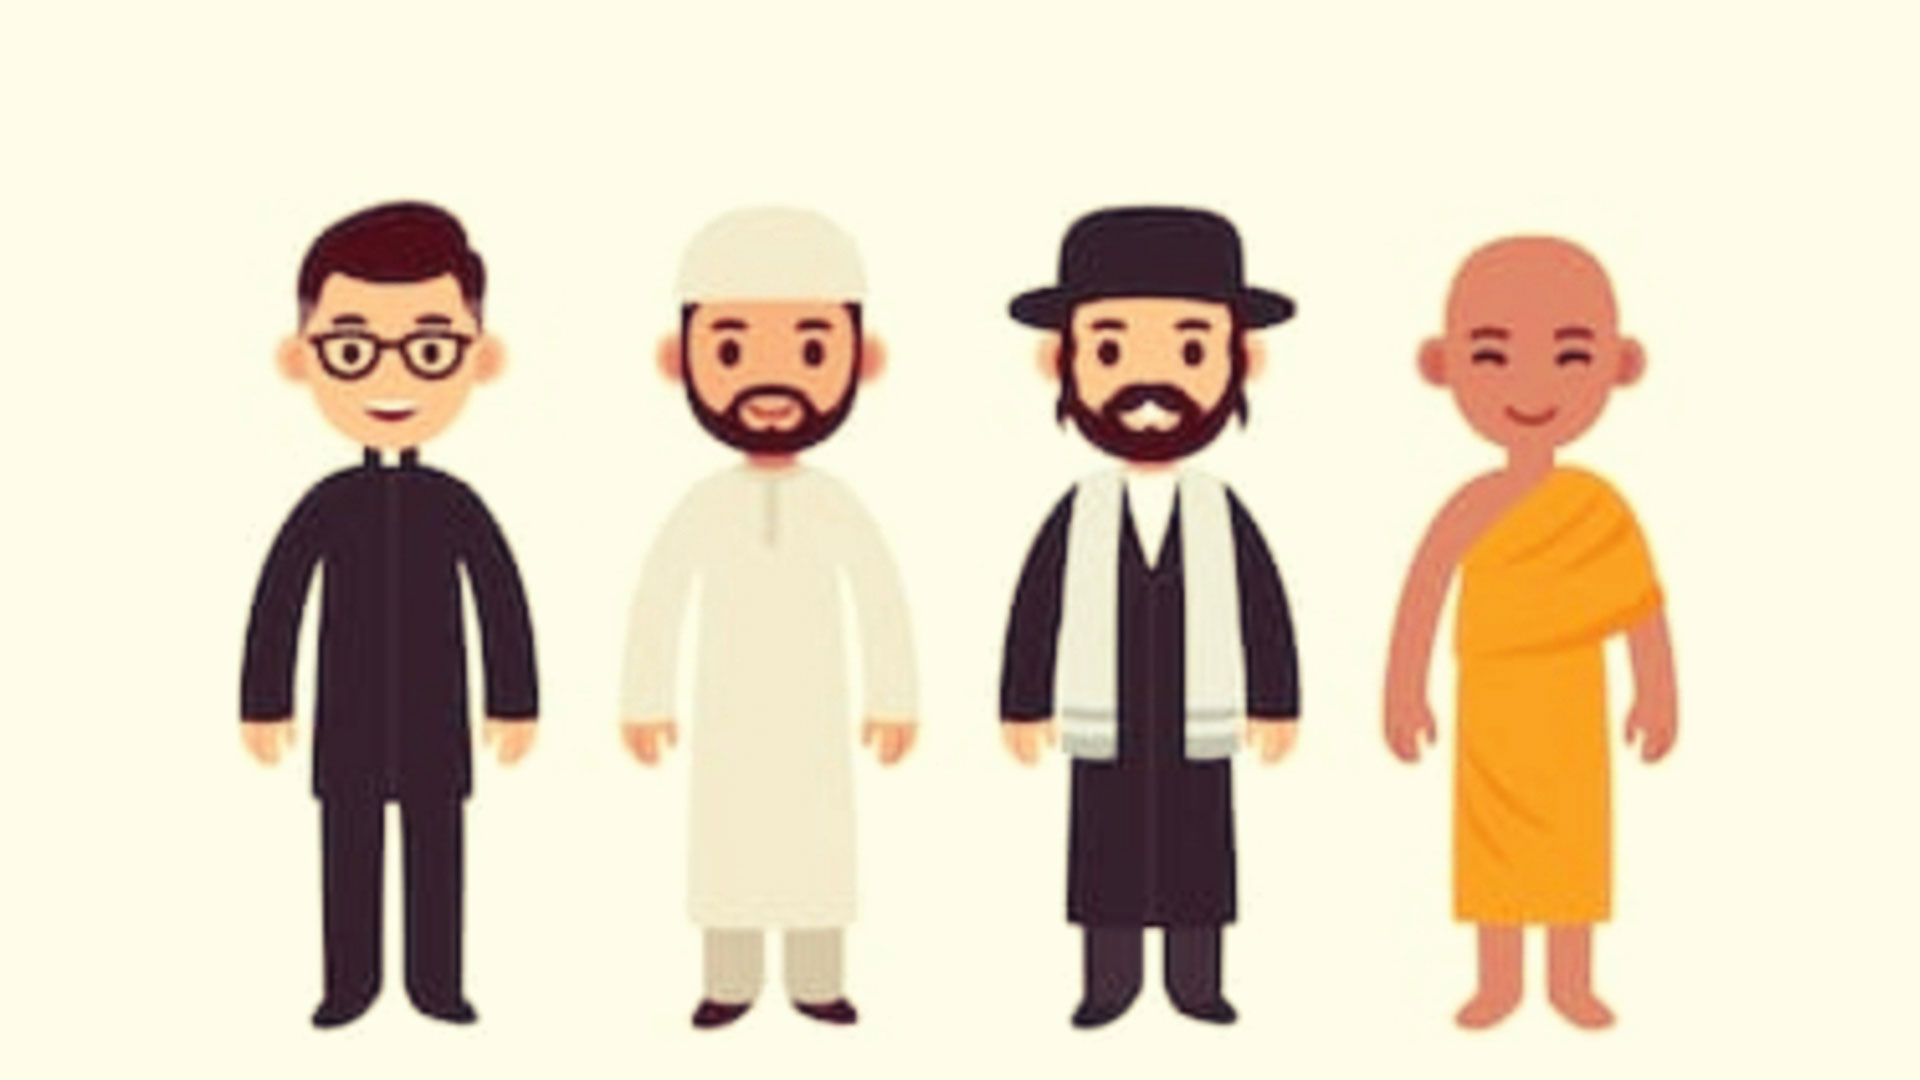 leaders of four religious organizations appear caricatured